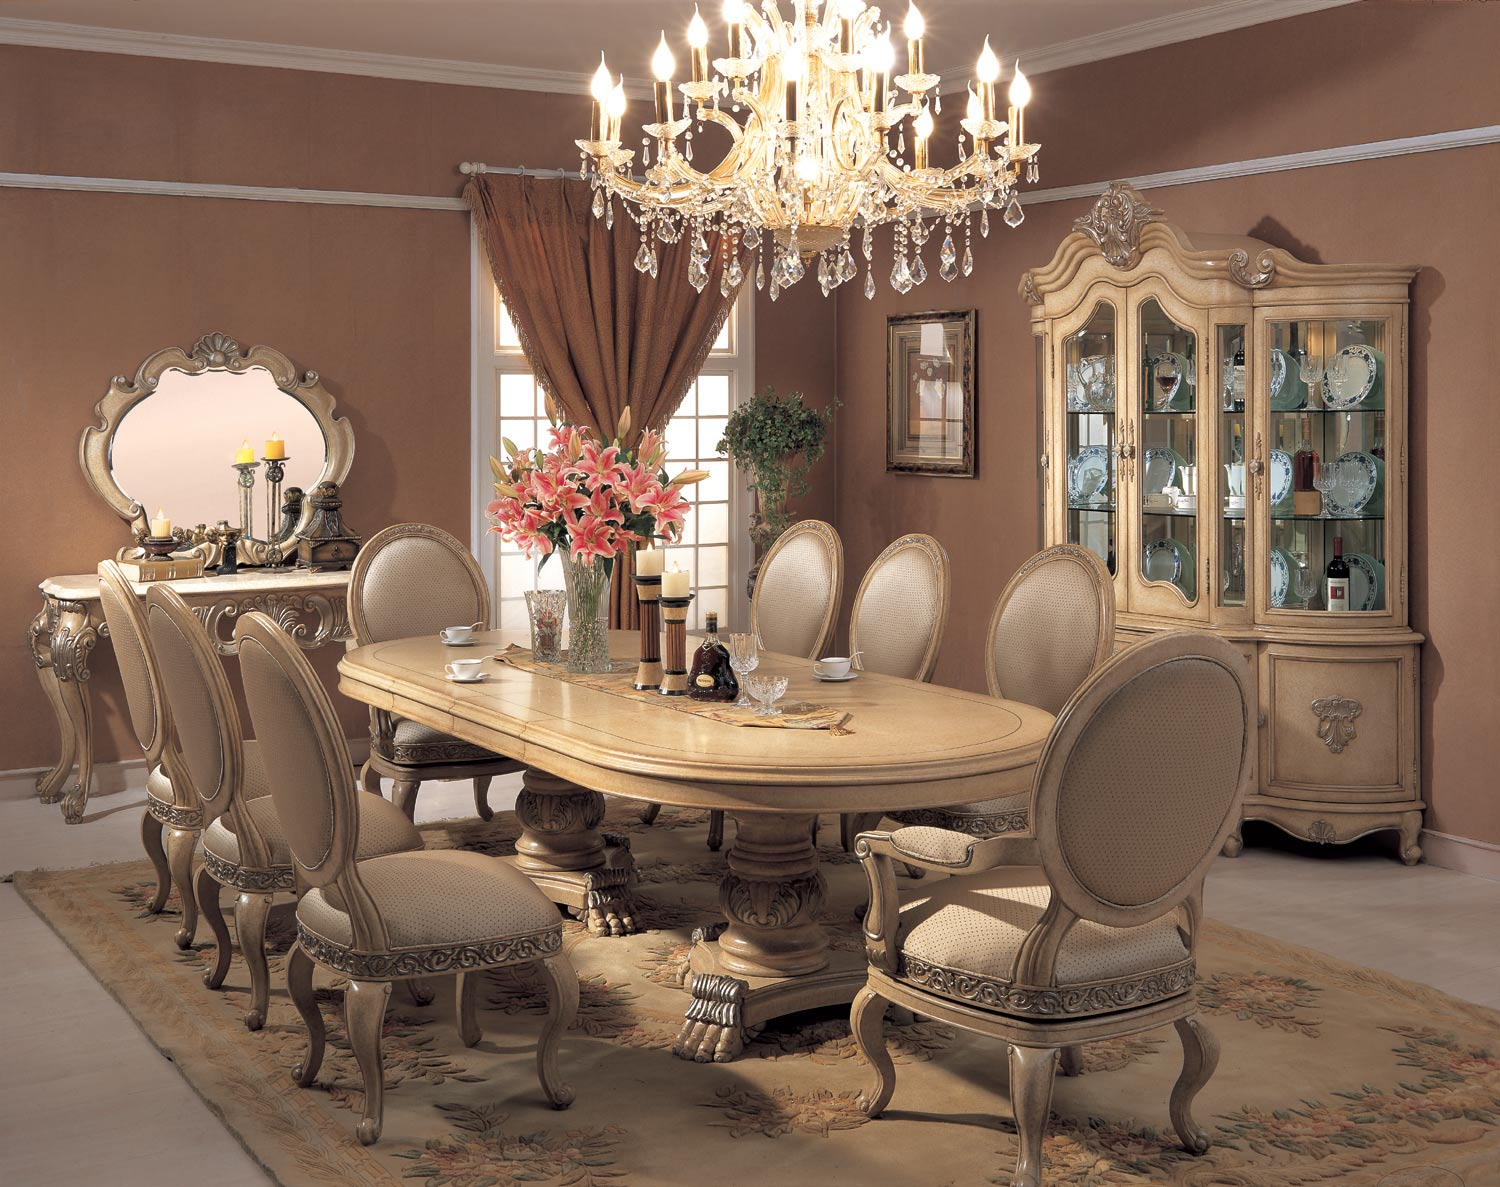 Chardonnay Oval Table Dining Room Set Meja Makan Kursi Makan